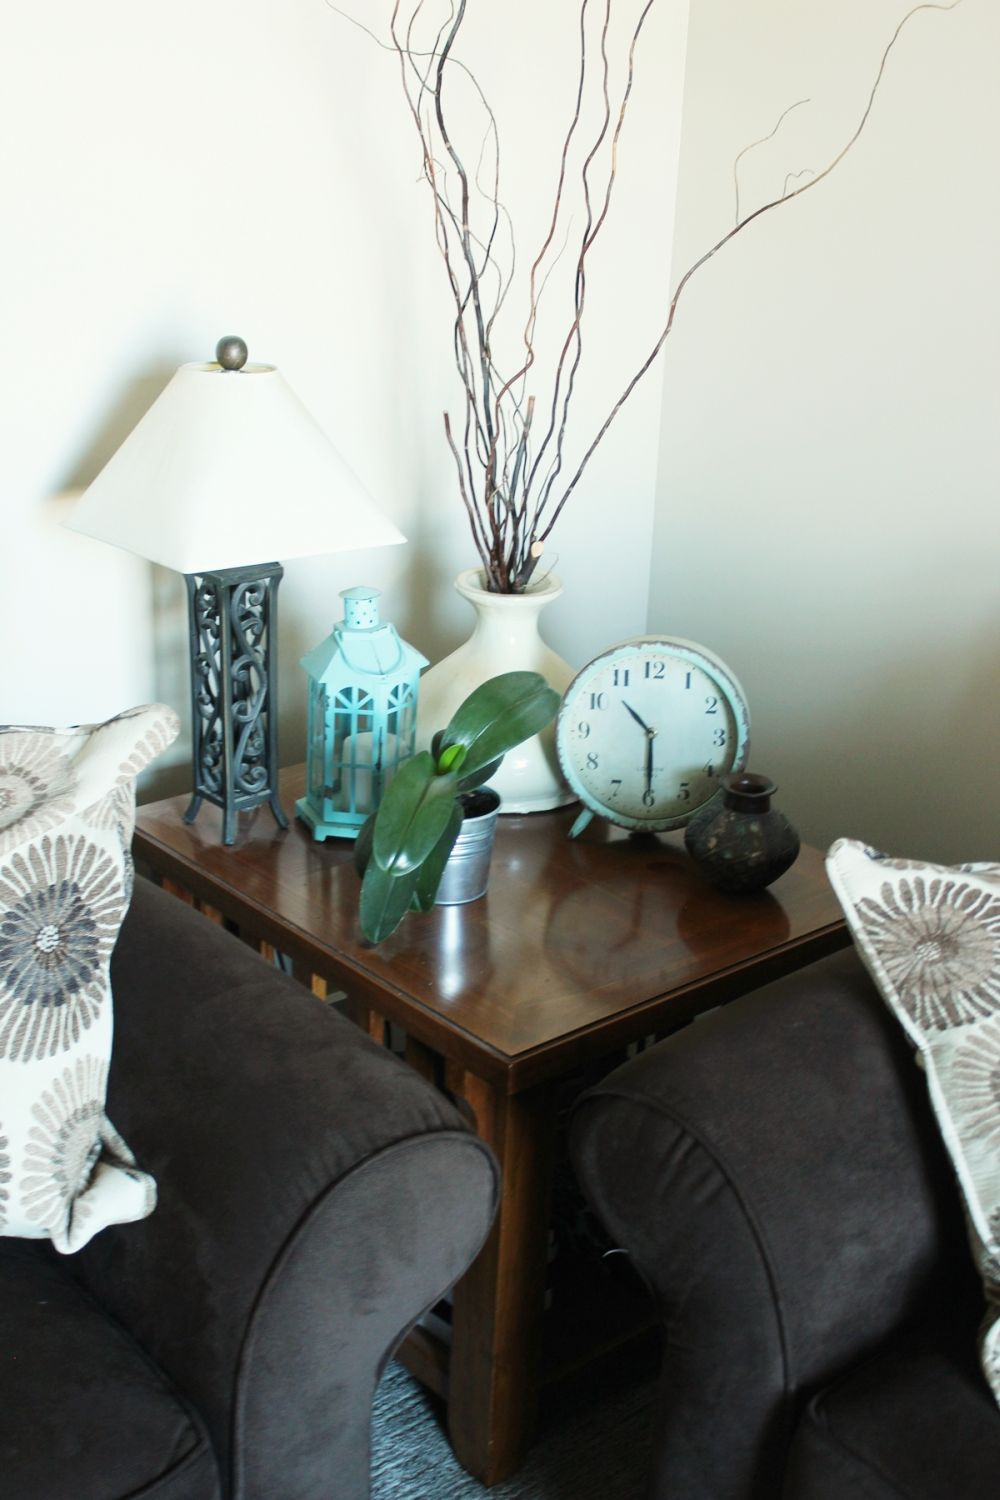 How to Decorate Family Room - Small Accessories